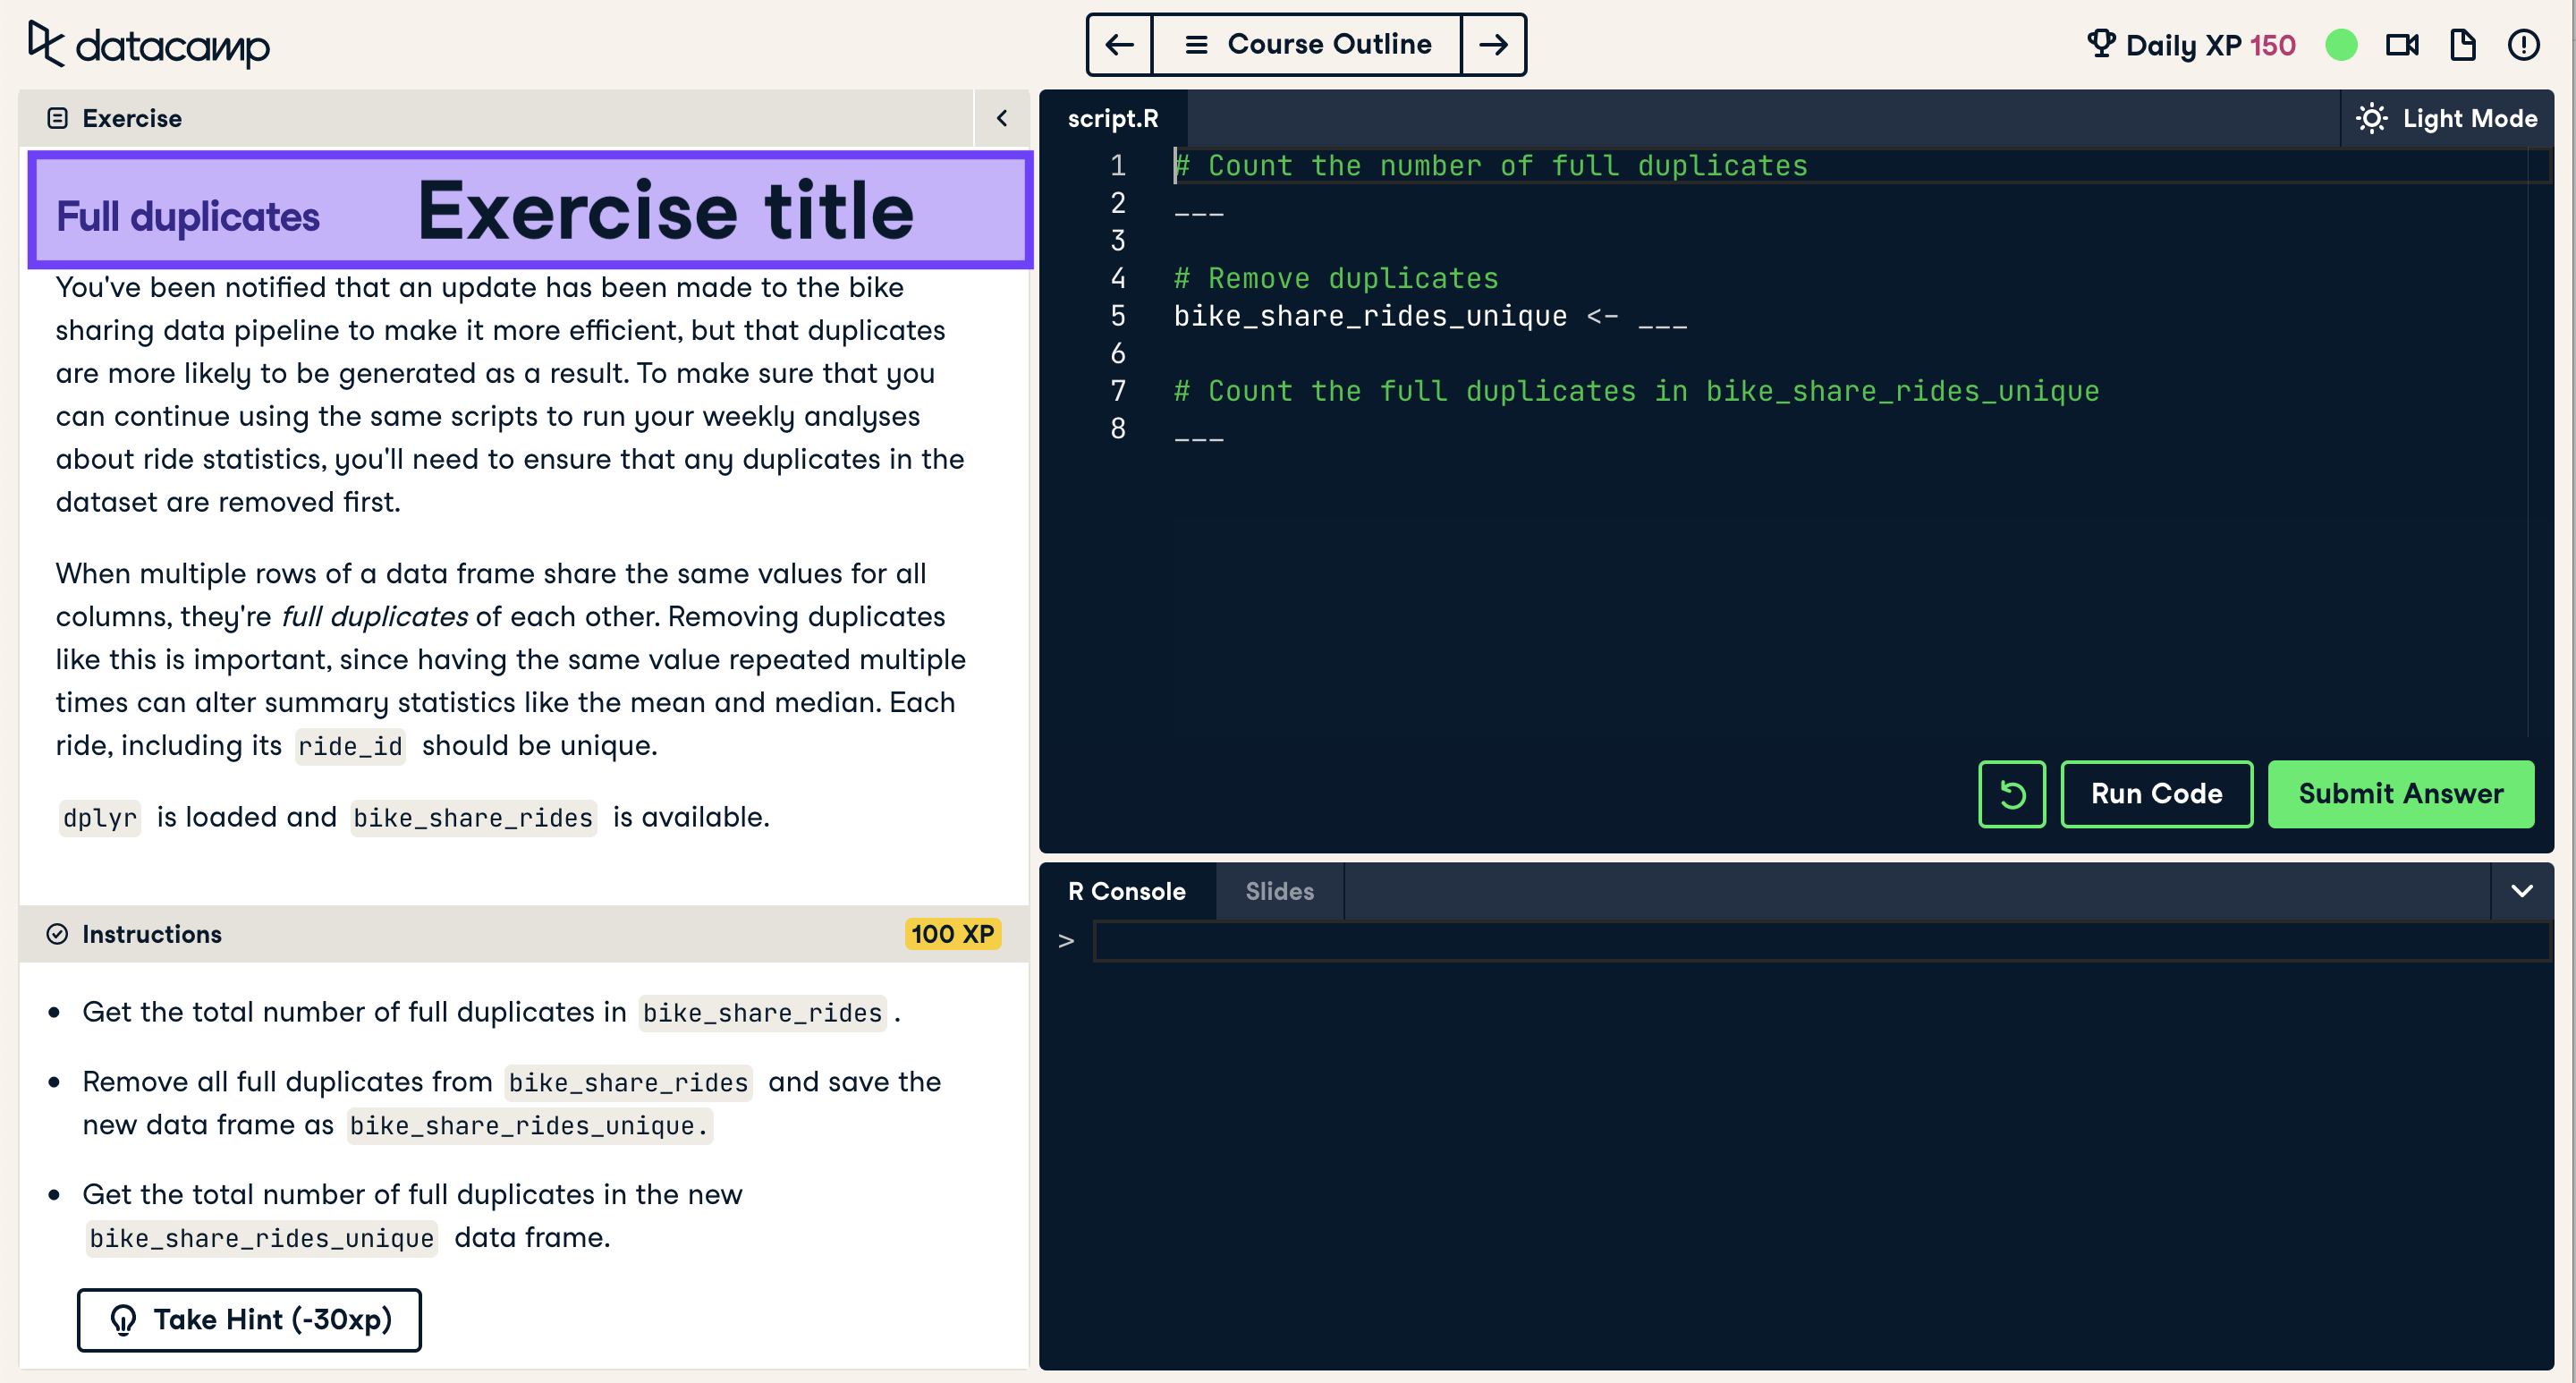 Screenshot of coding exercise with exercise title highlighted